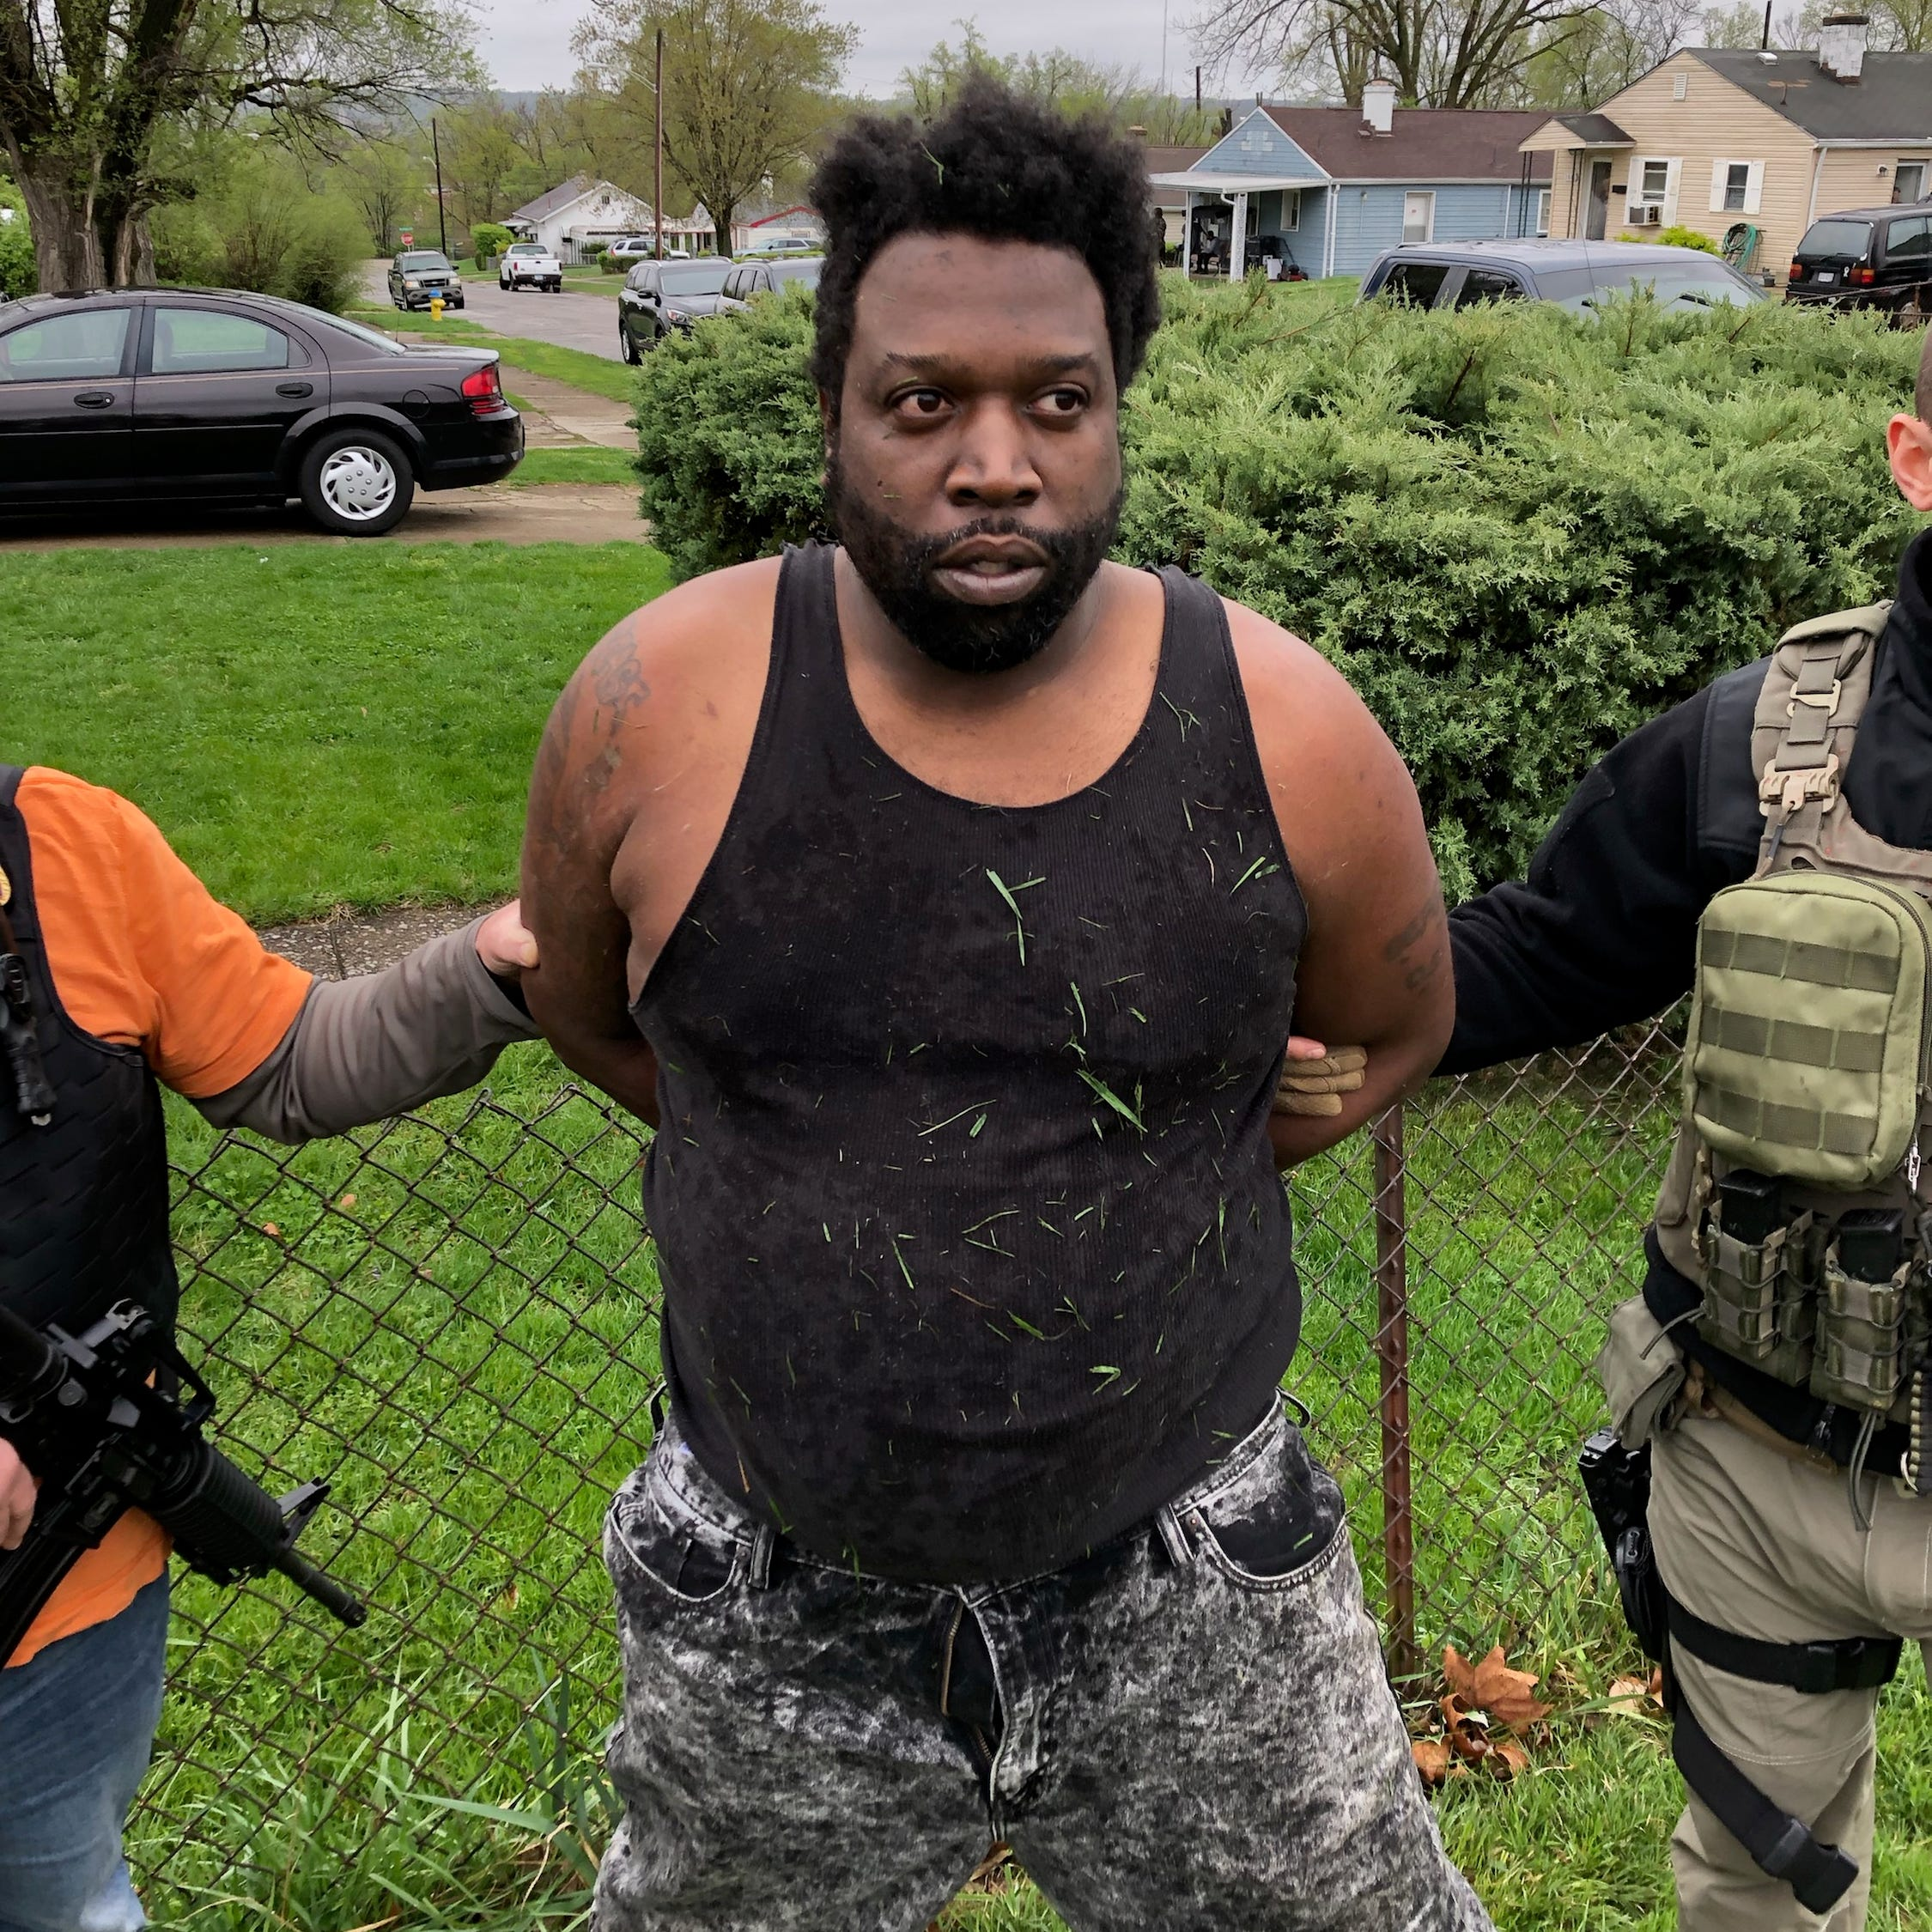 Task force tracks down, apprehends local fugitive in Dayton, Ohio